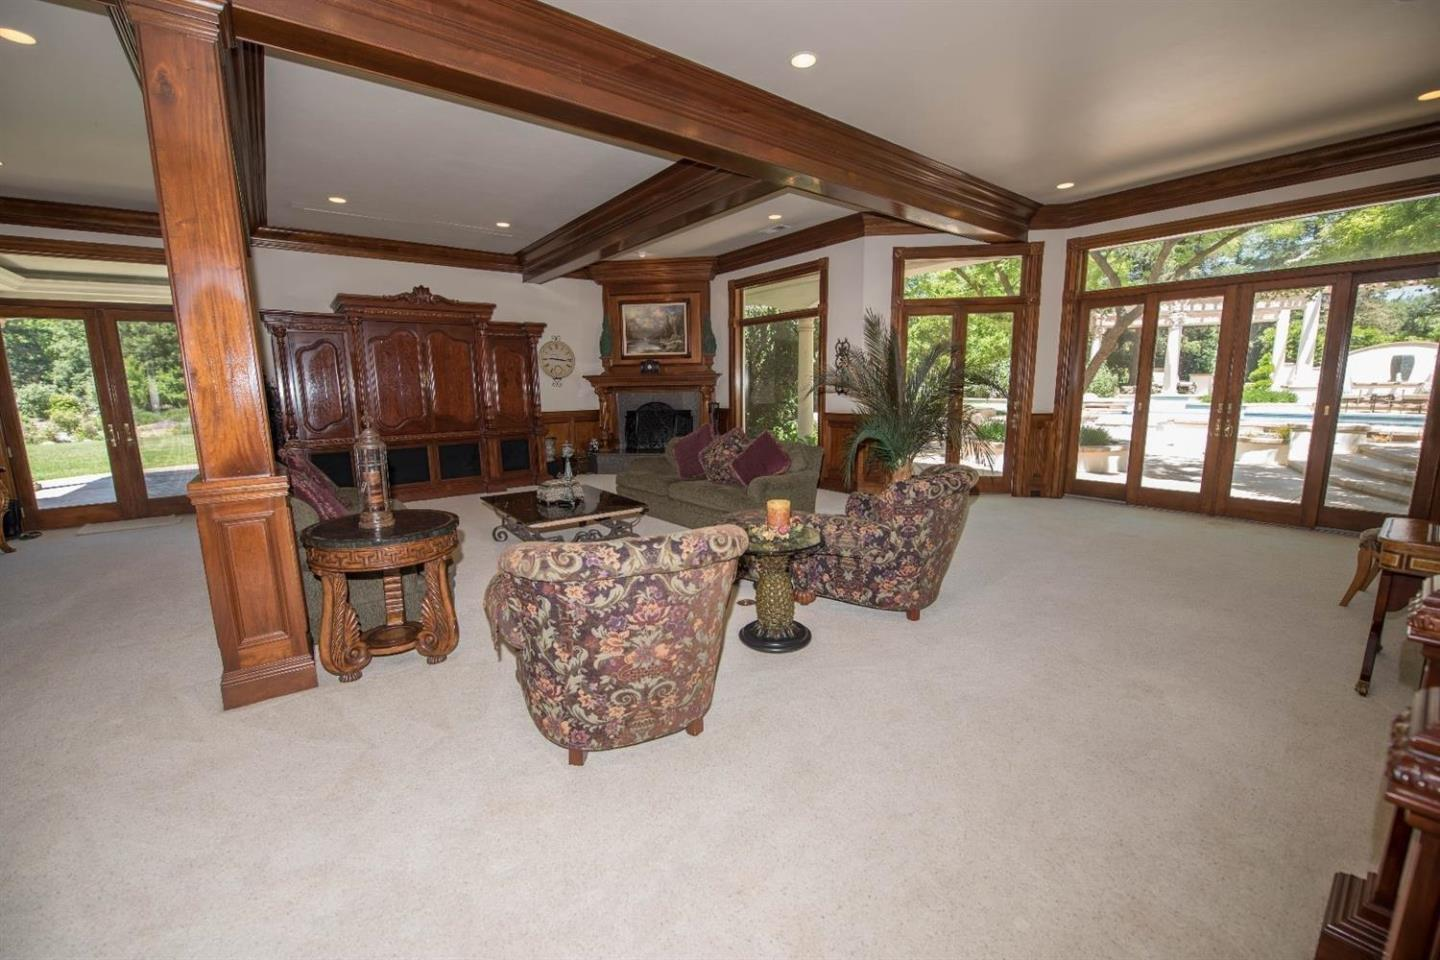 Additional photo for property listing at 2796 E Silaxo Road  Clovis, California 93619 United States